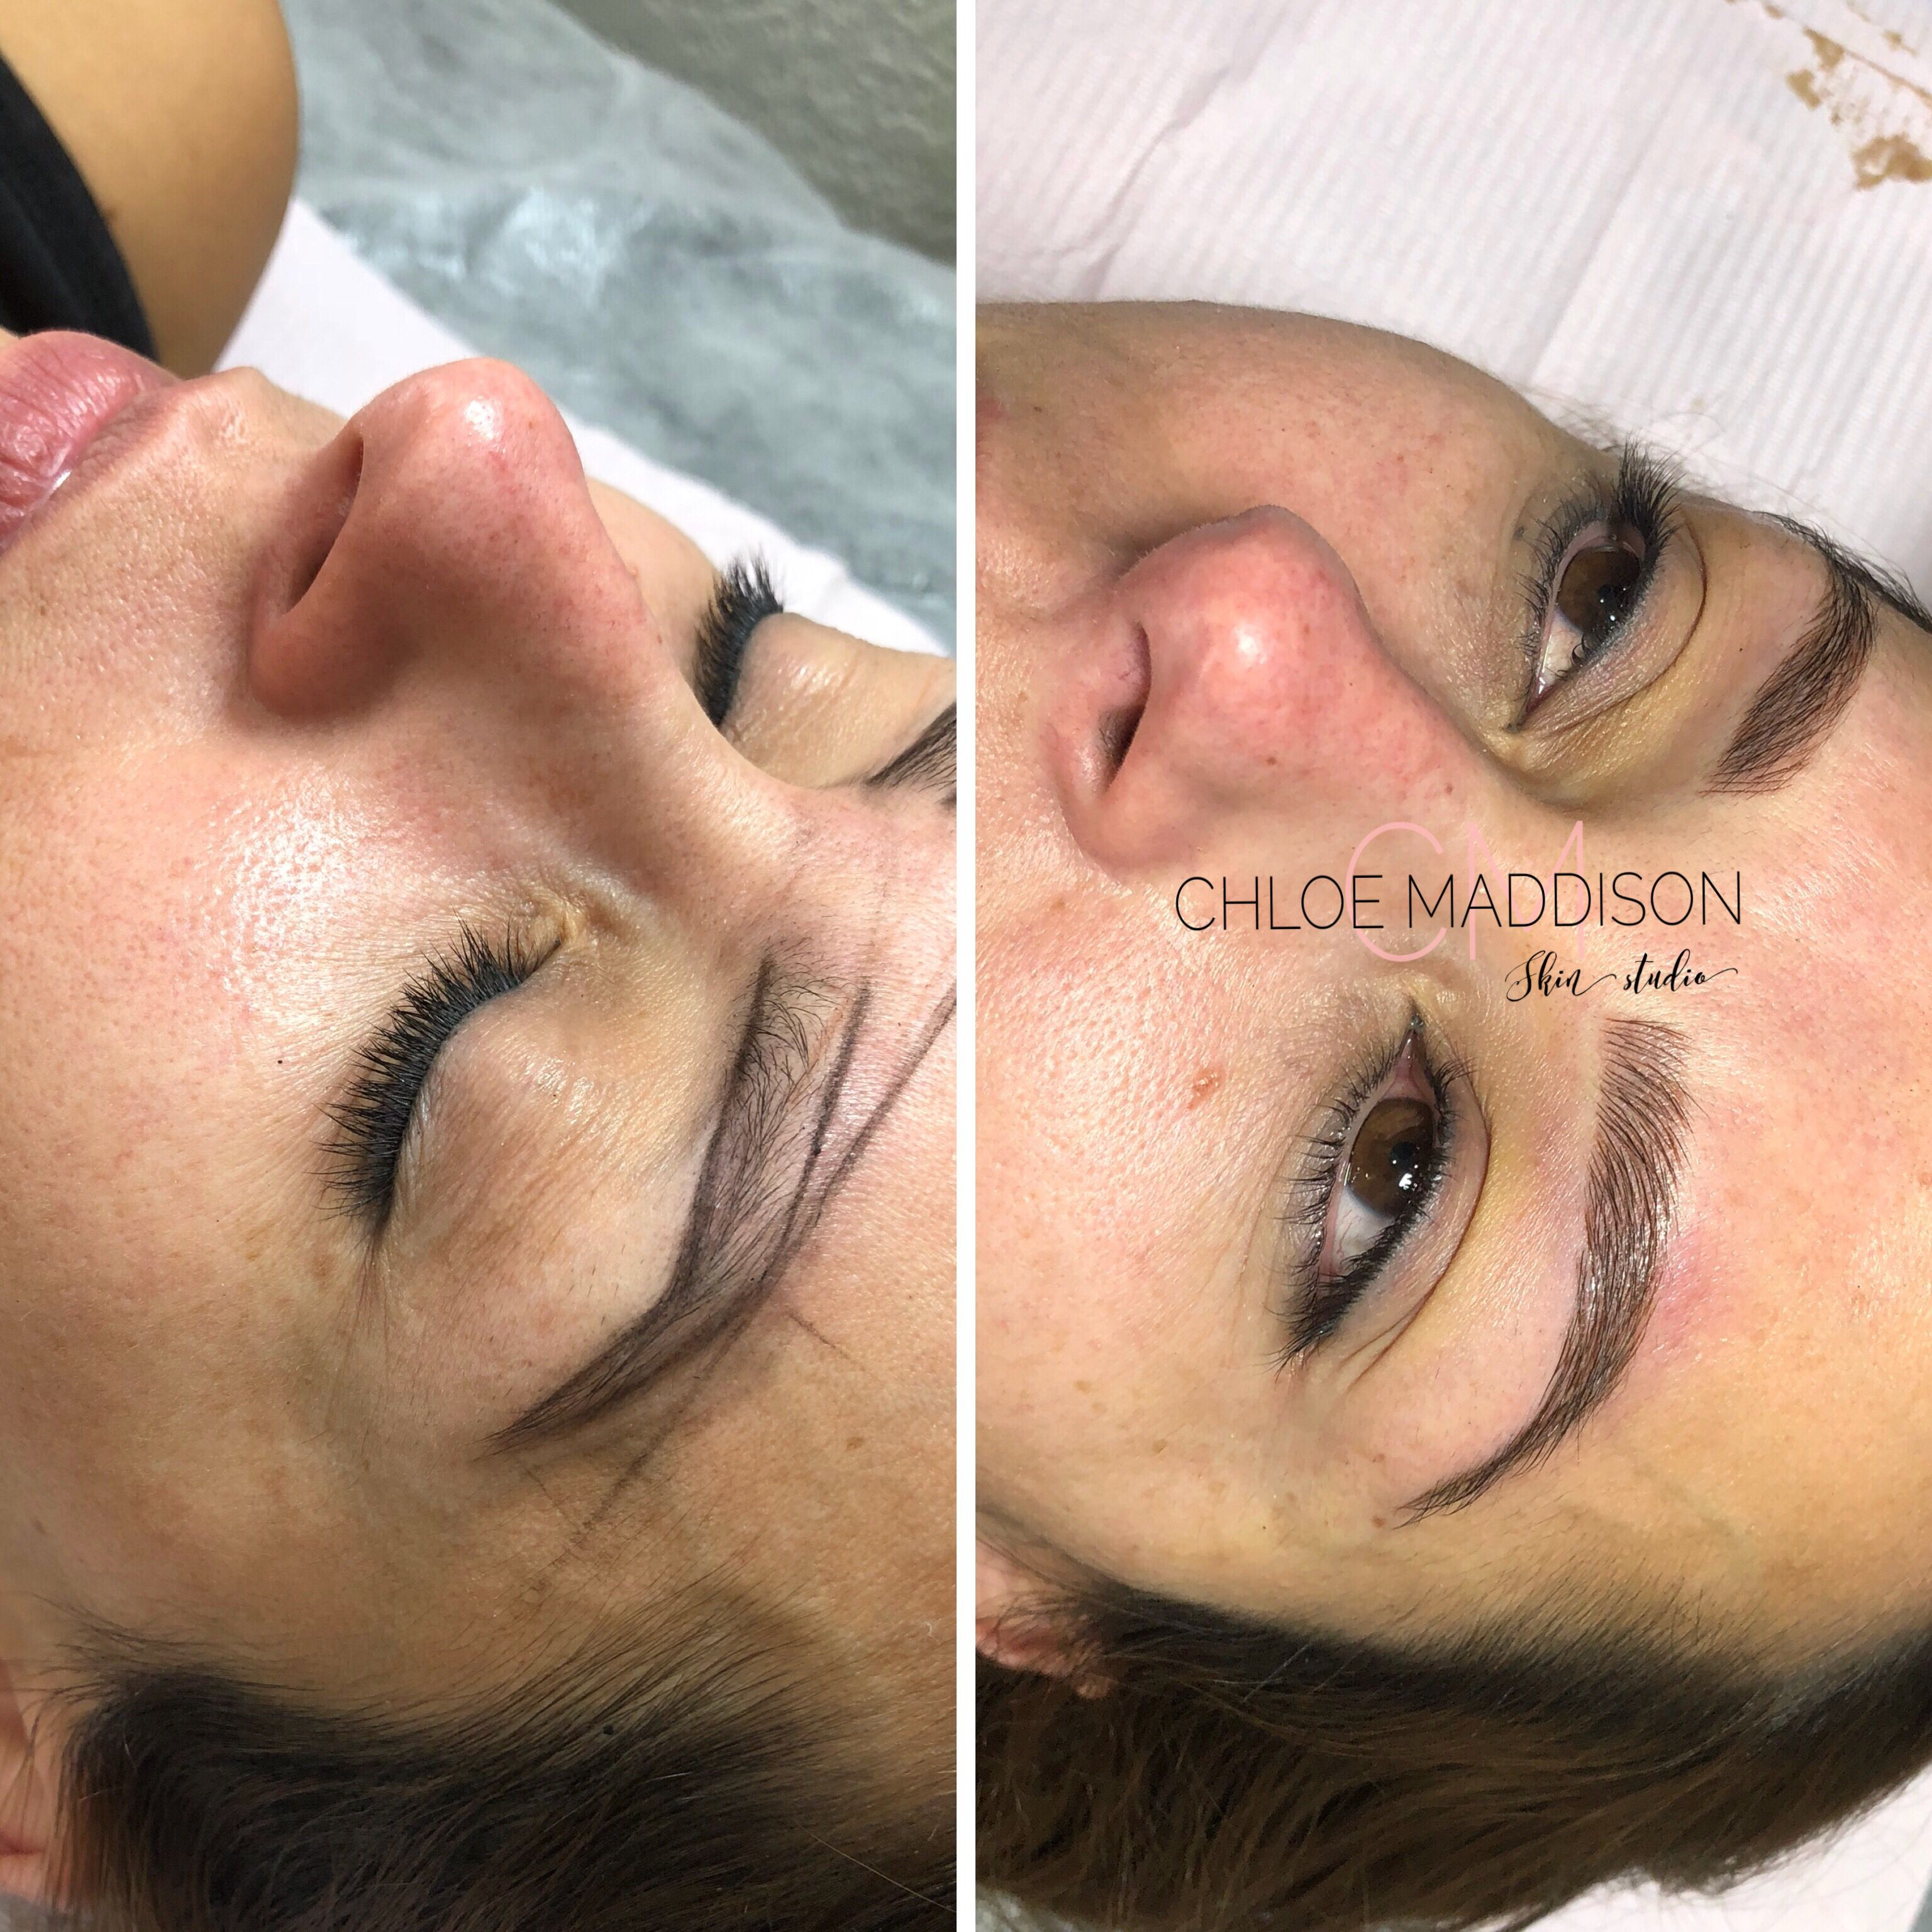 Strokes for this beauty performed at Chloe Maddison Skin